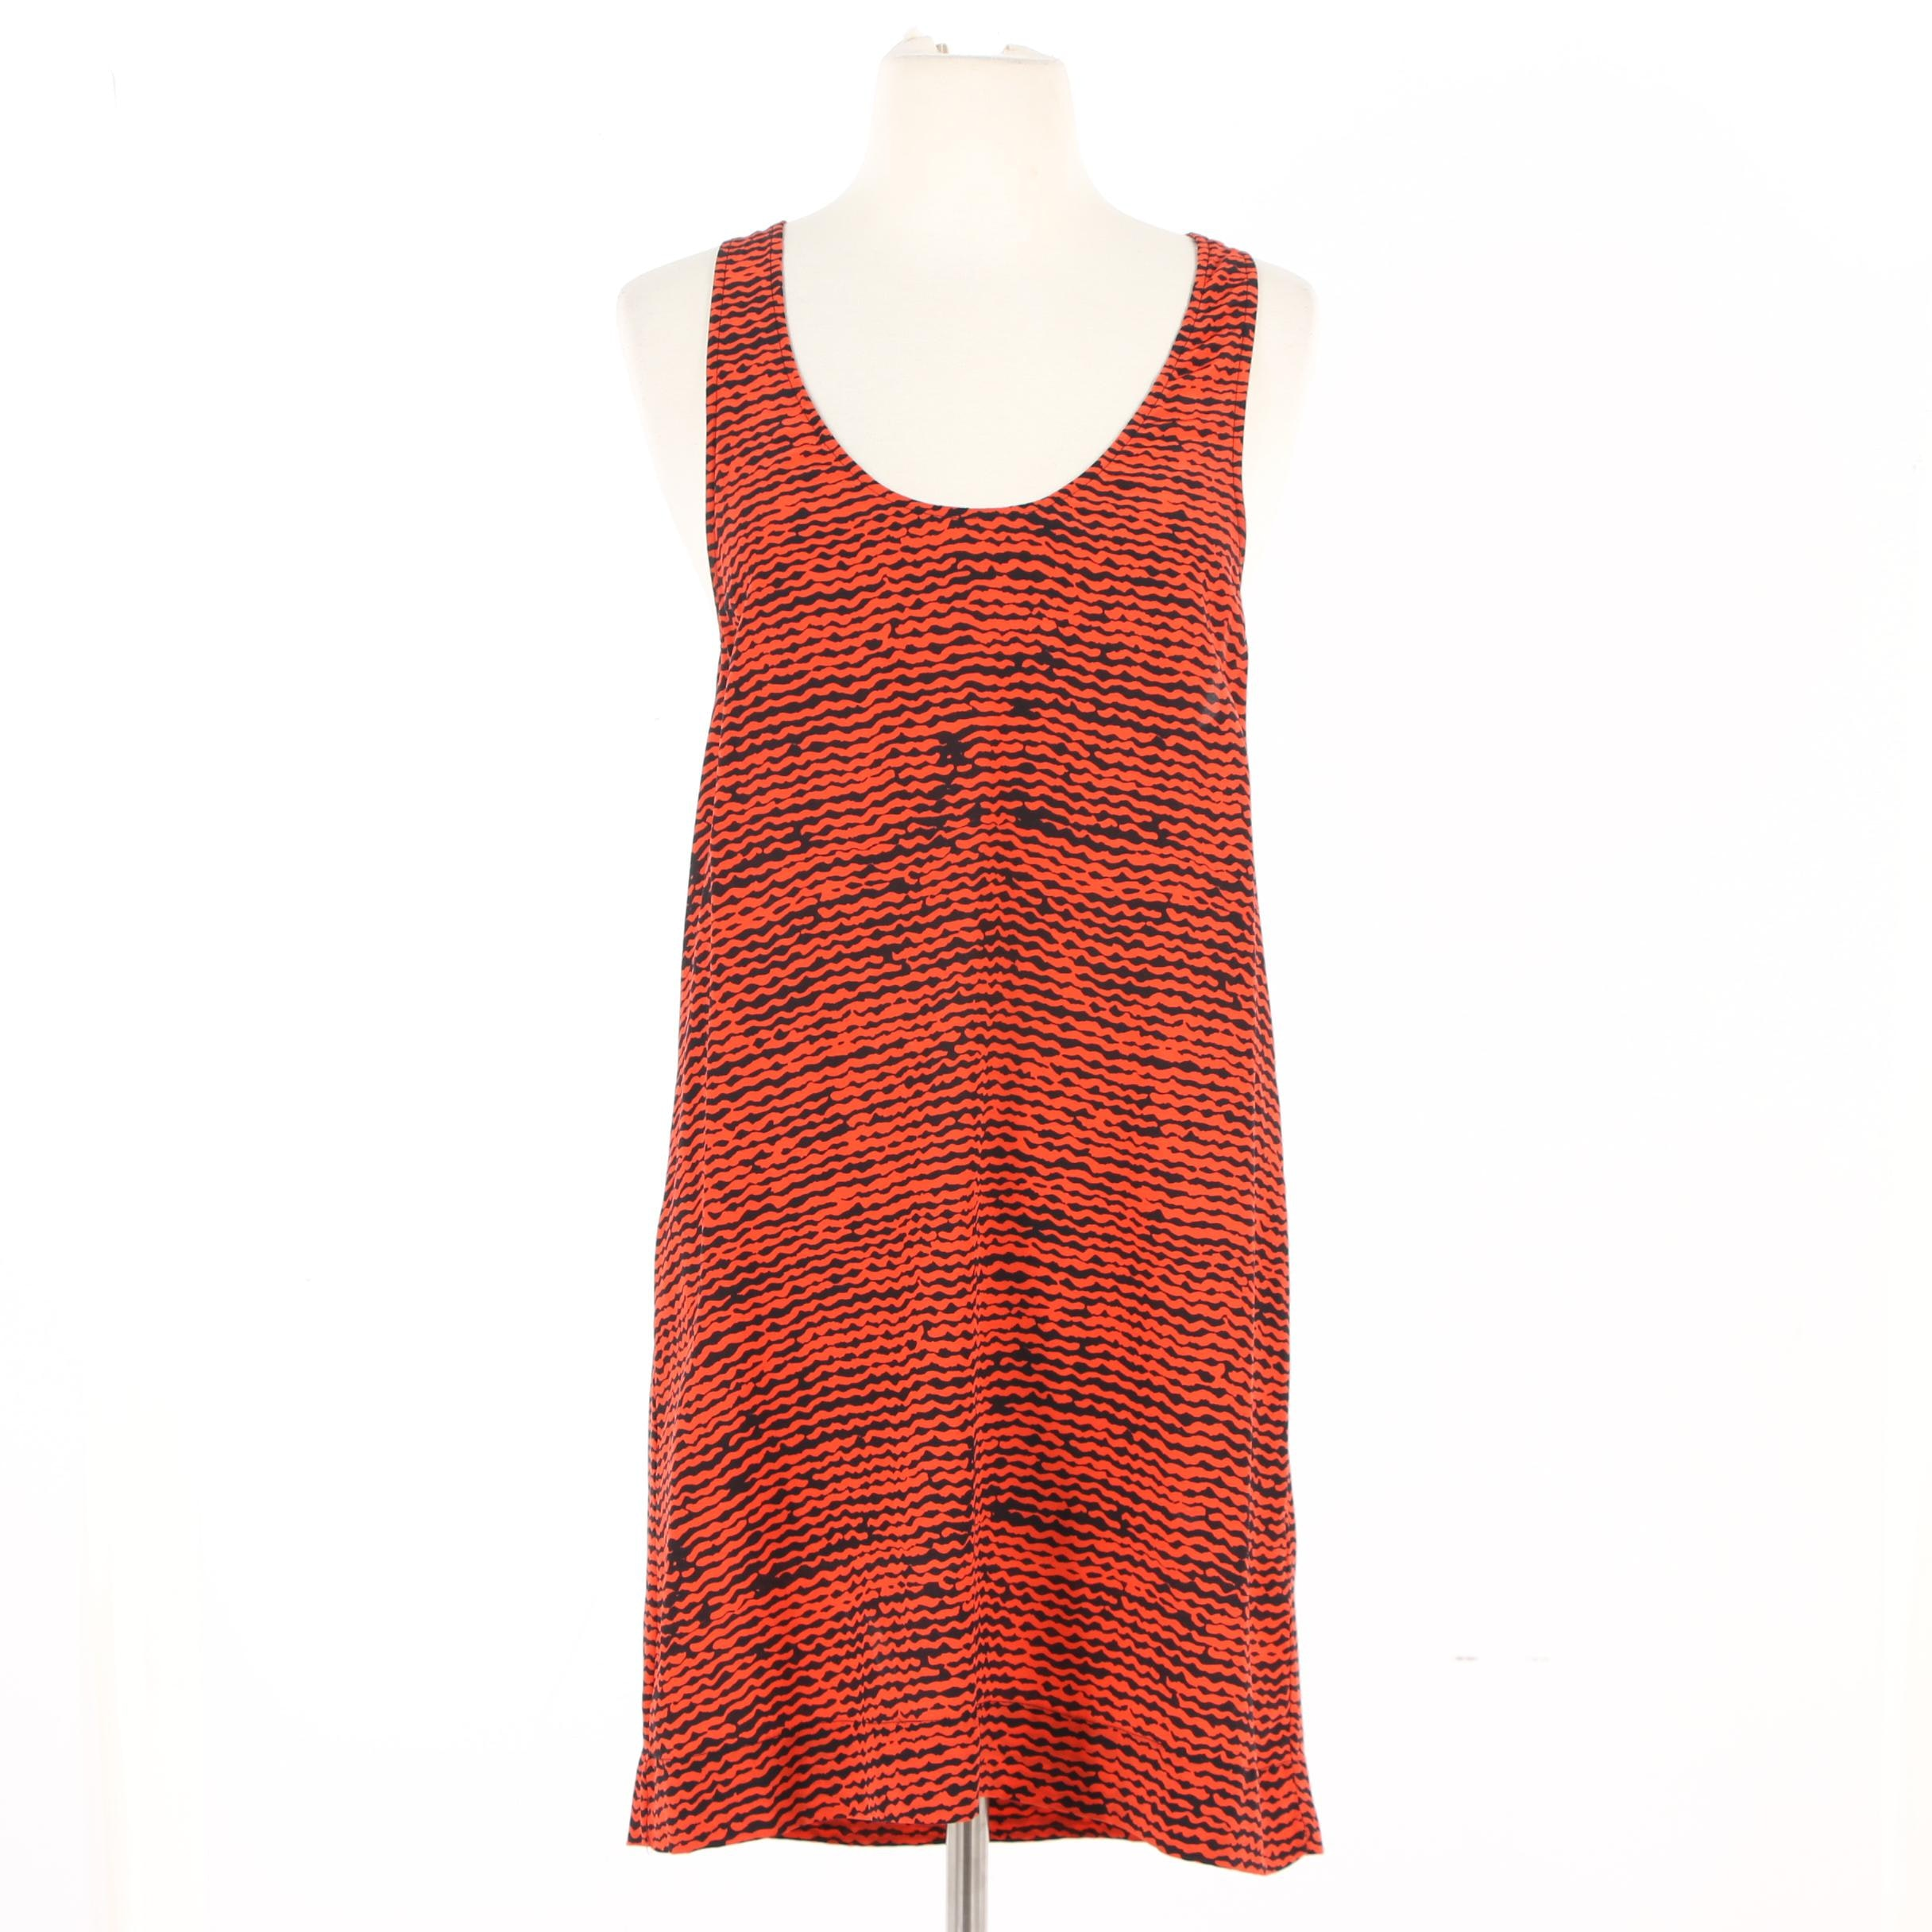 Joie Tomato Red and Black Silk Racerback Dress